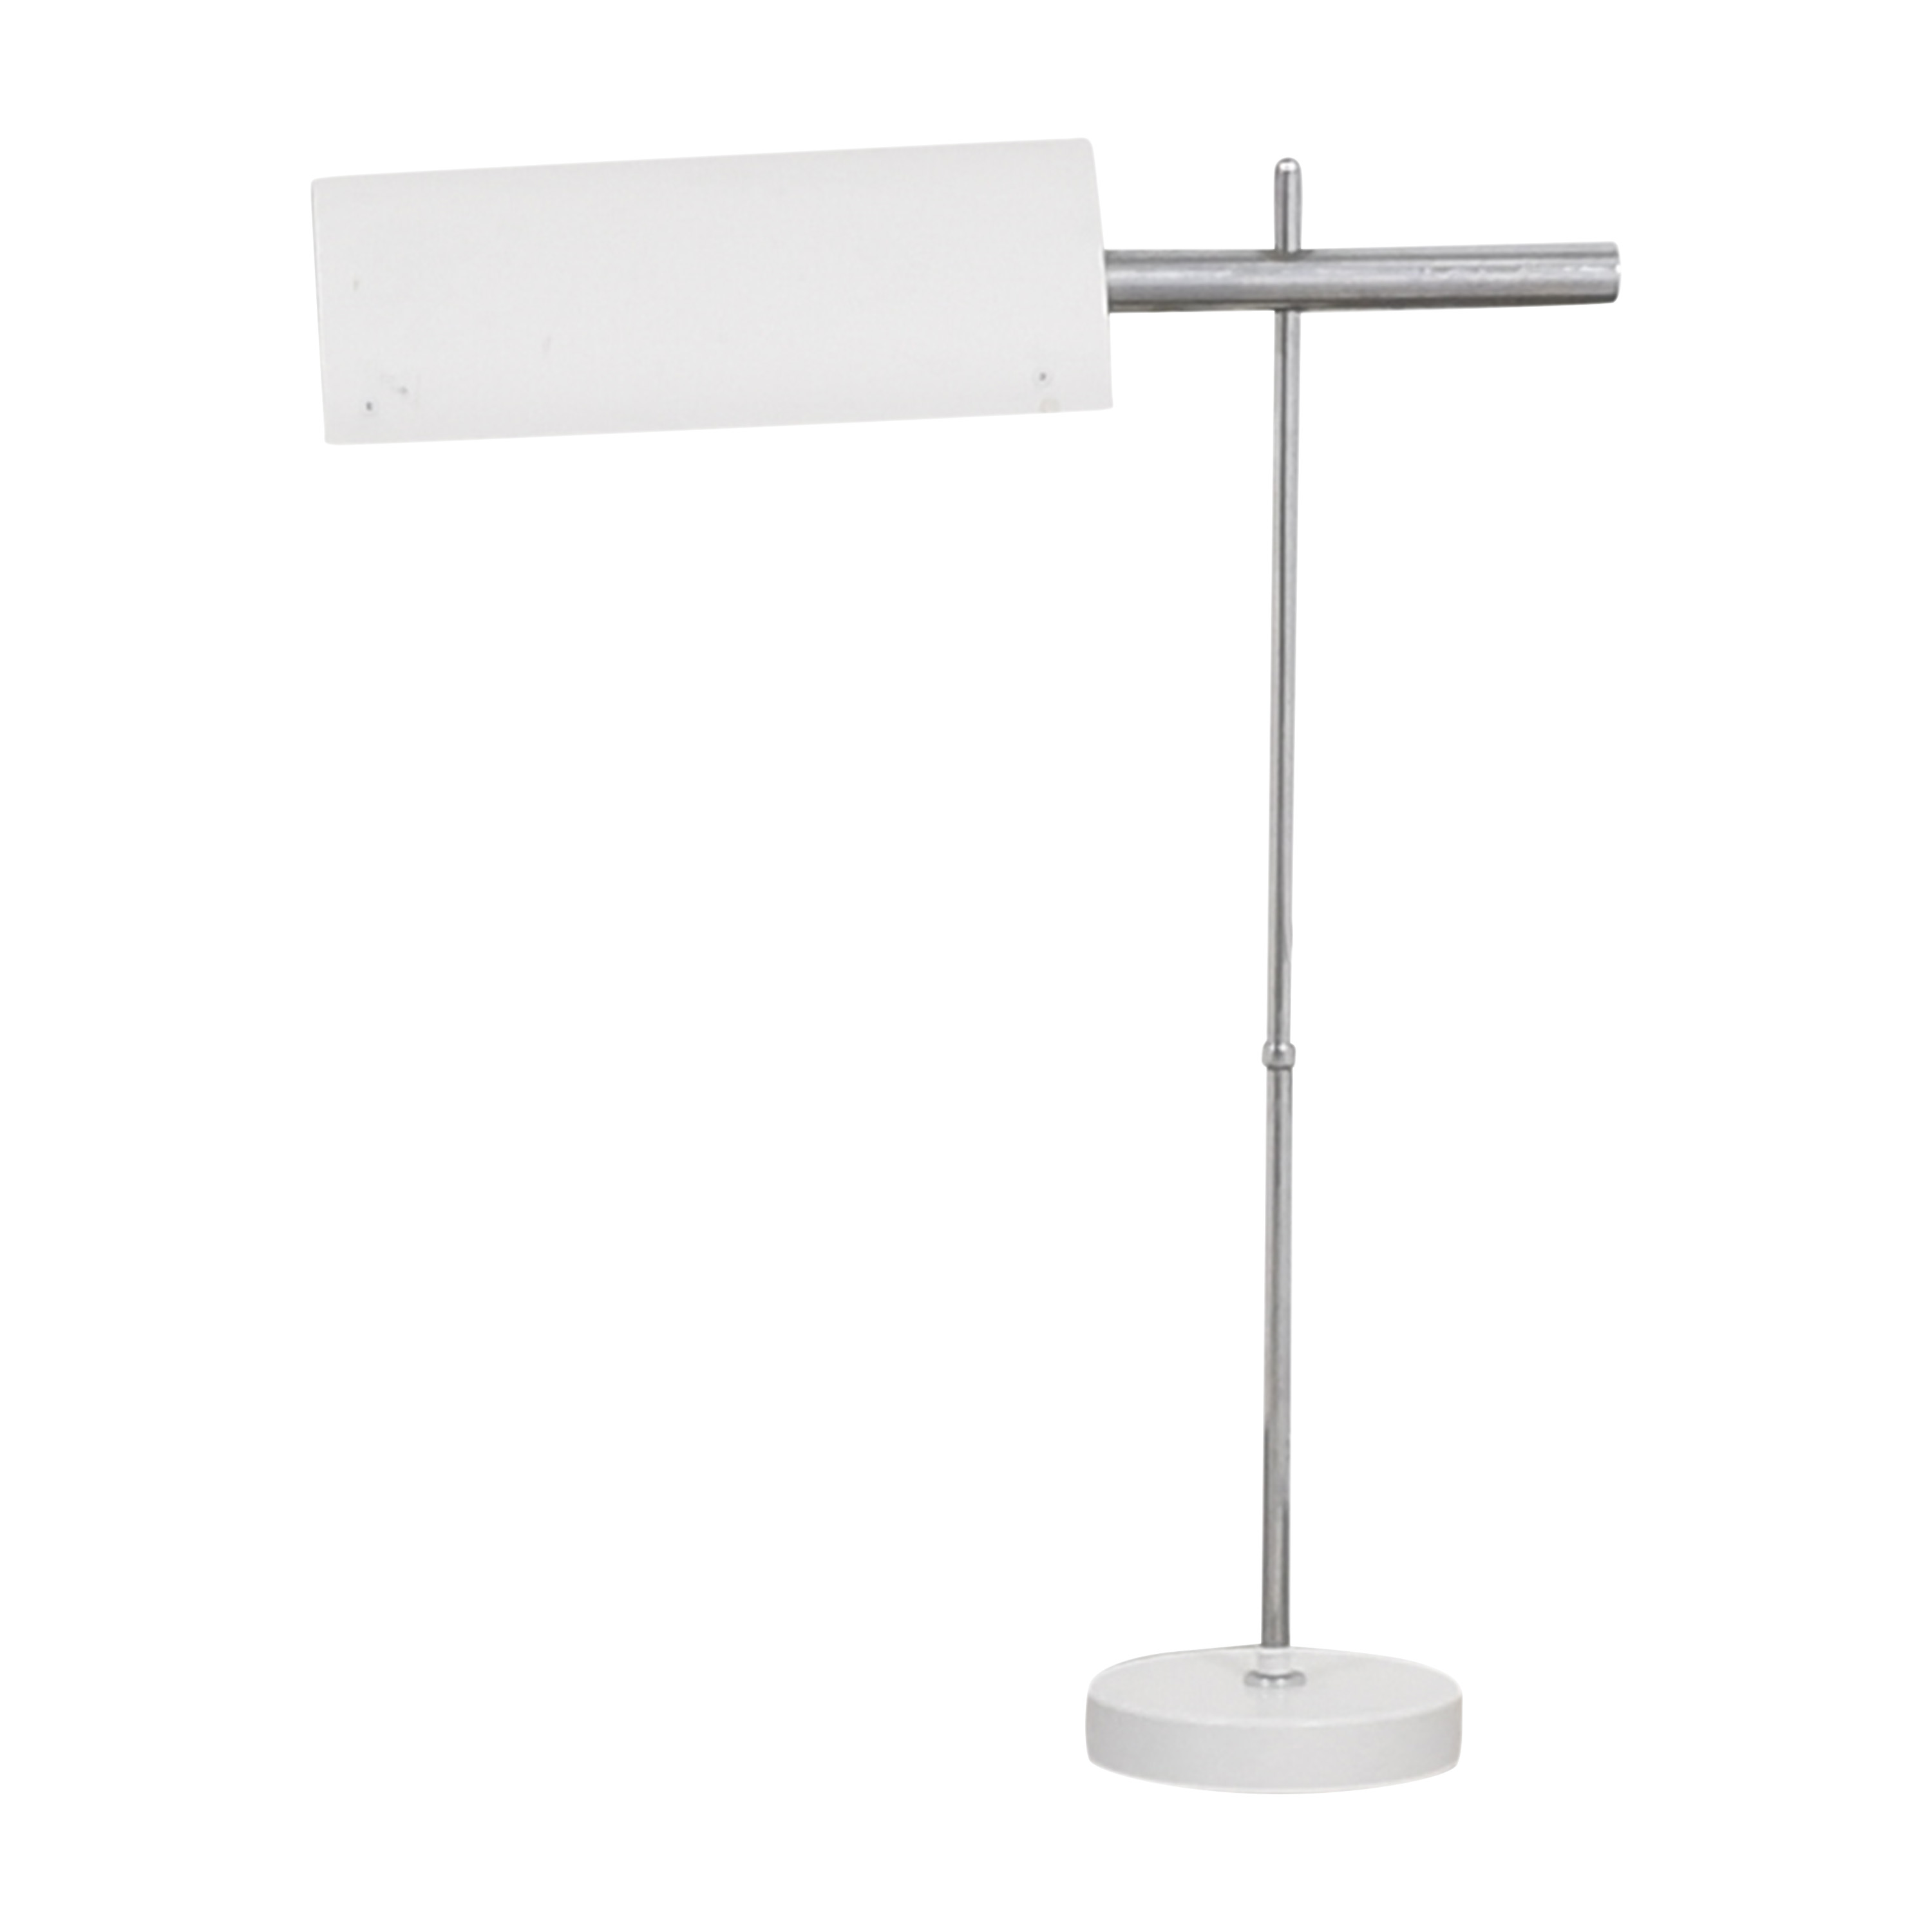 Artek Artek BS712 Table Lamp on sale